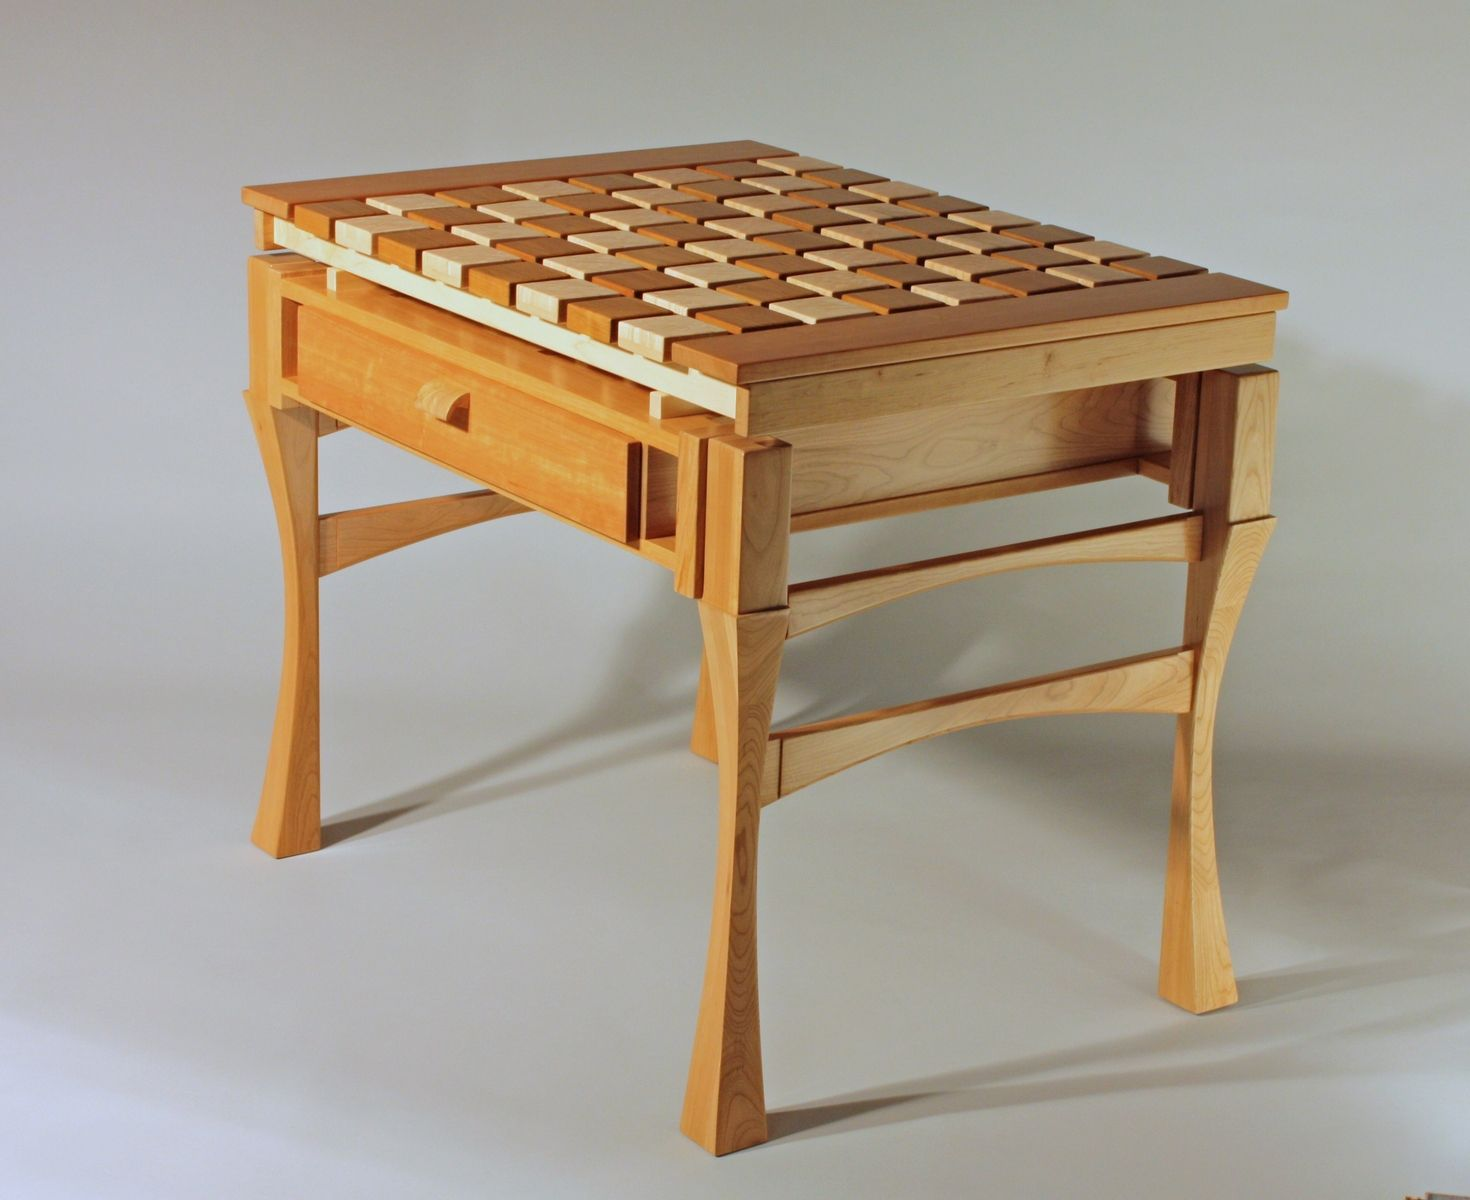 Handmade Moated Chess Tableu2122 by Joiner Of Fine Furniture : CustomMade.com